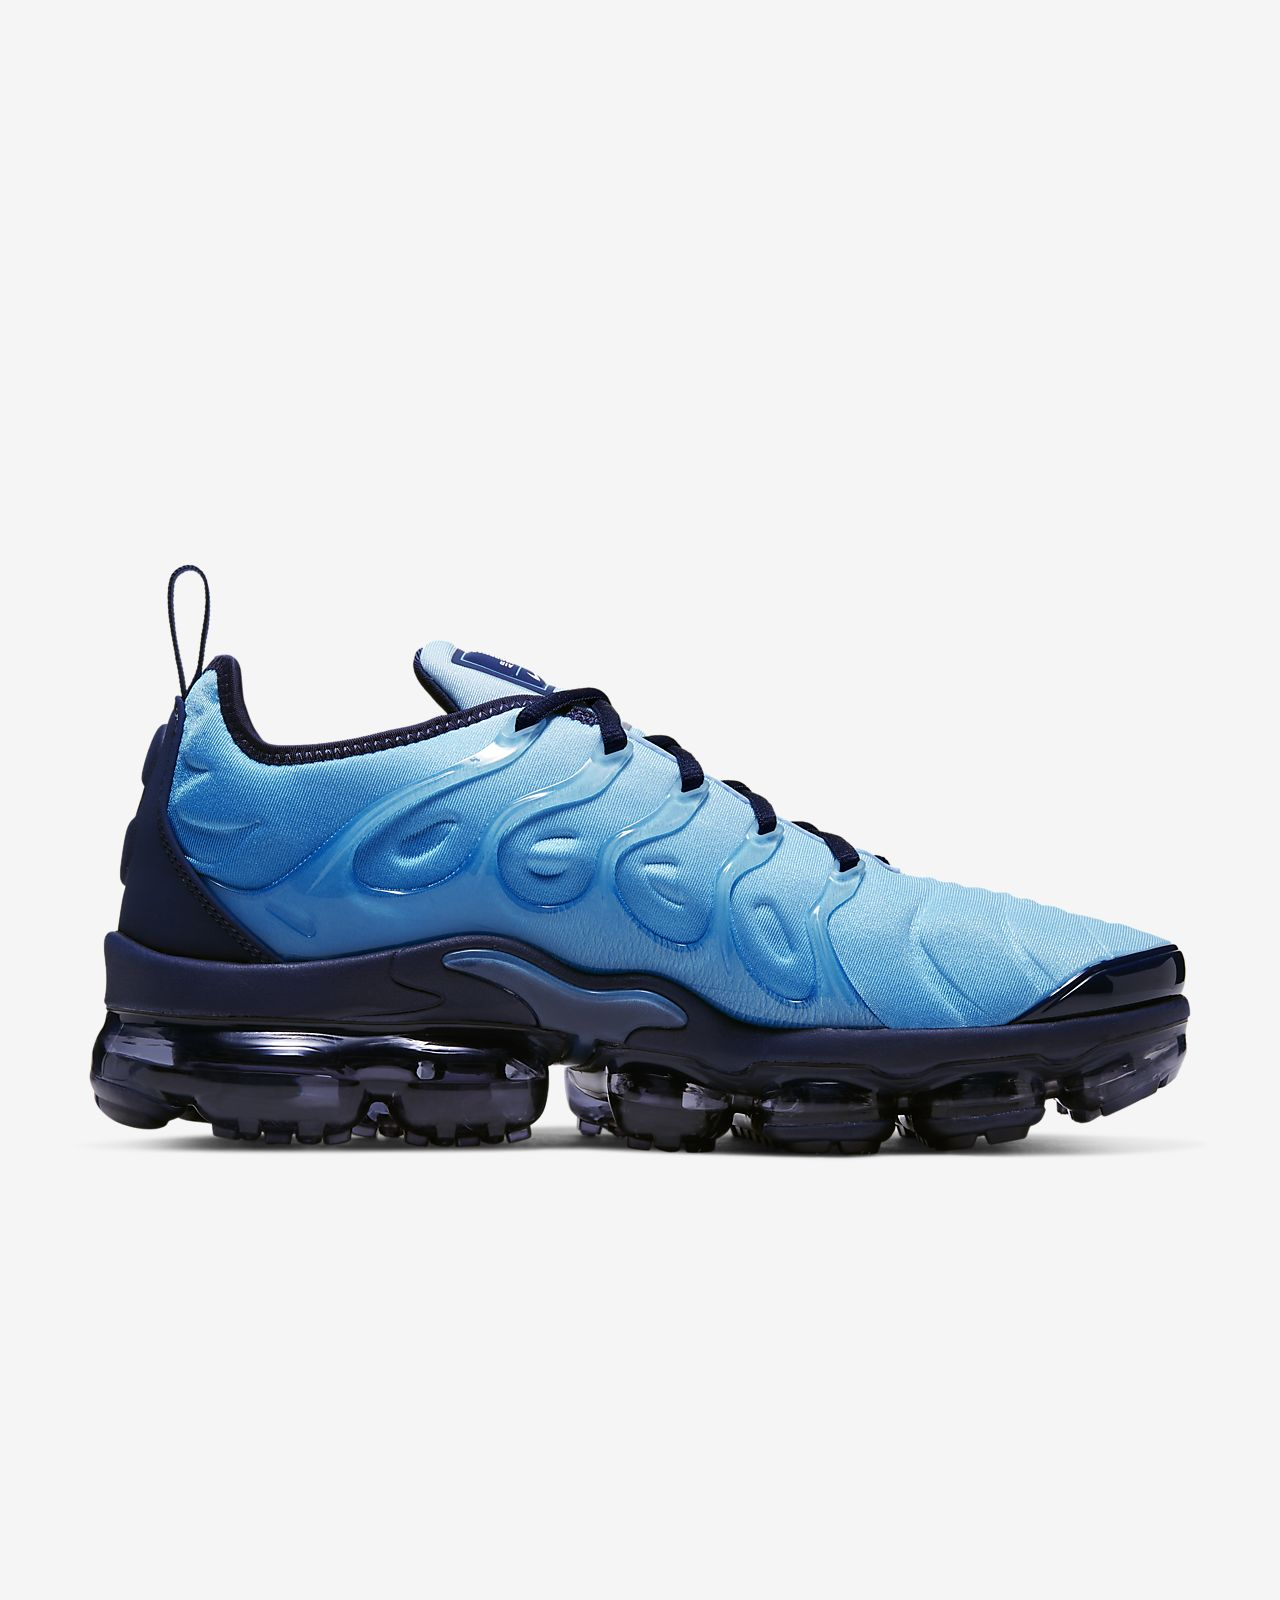 Nike Air Max Deluxe (Photo BlueWolf Grey) – amongst few